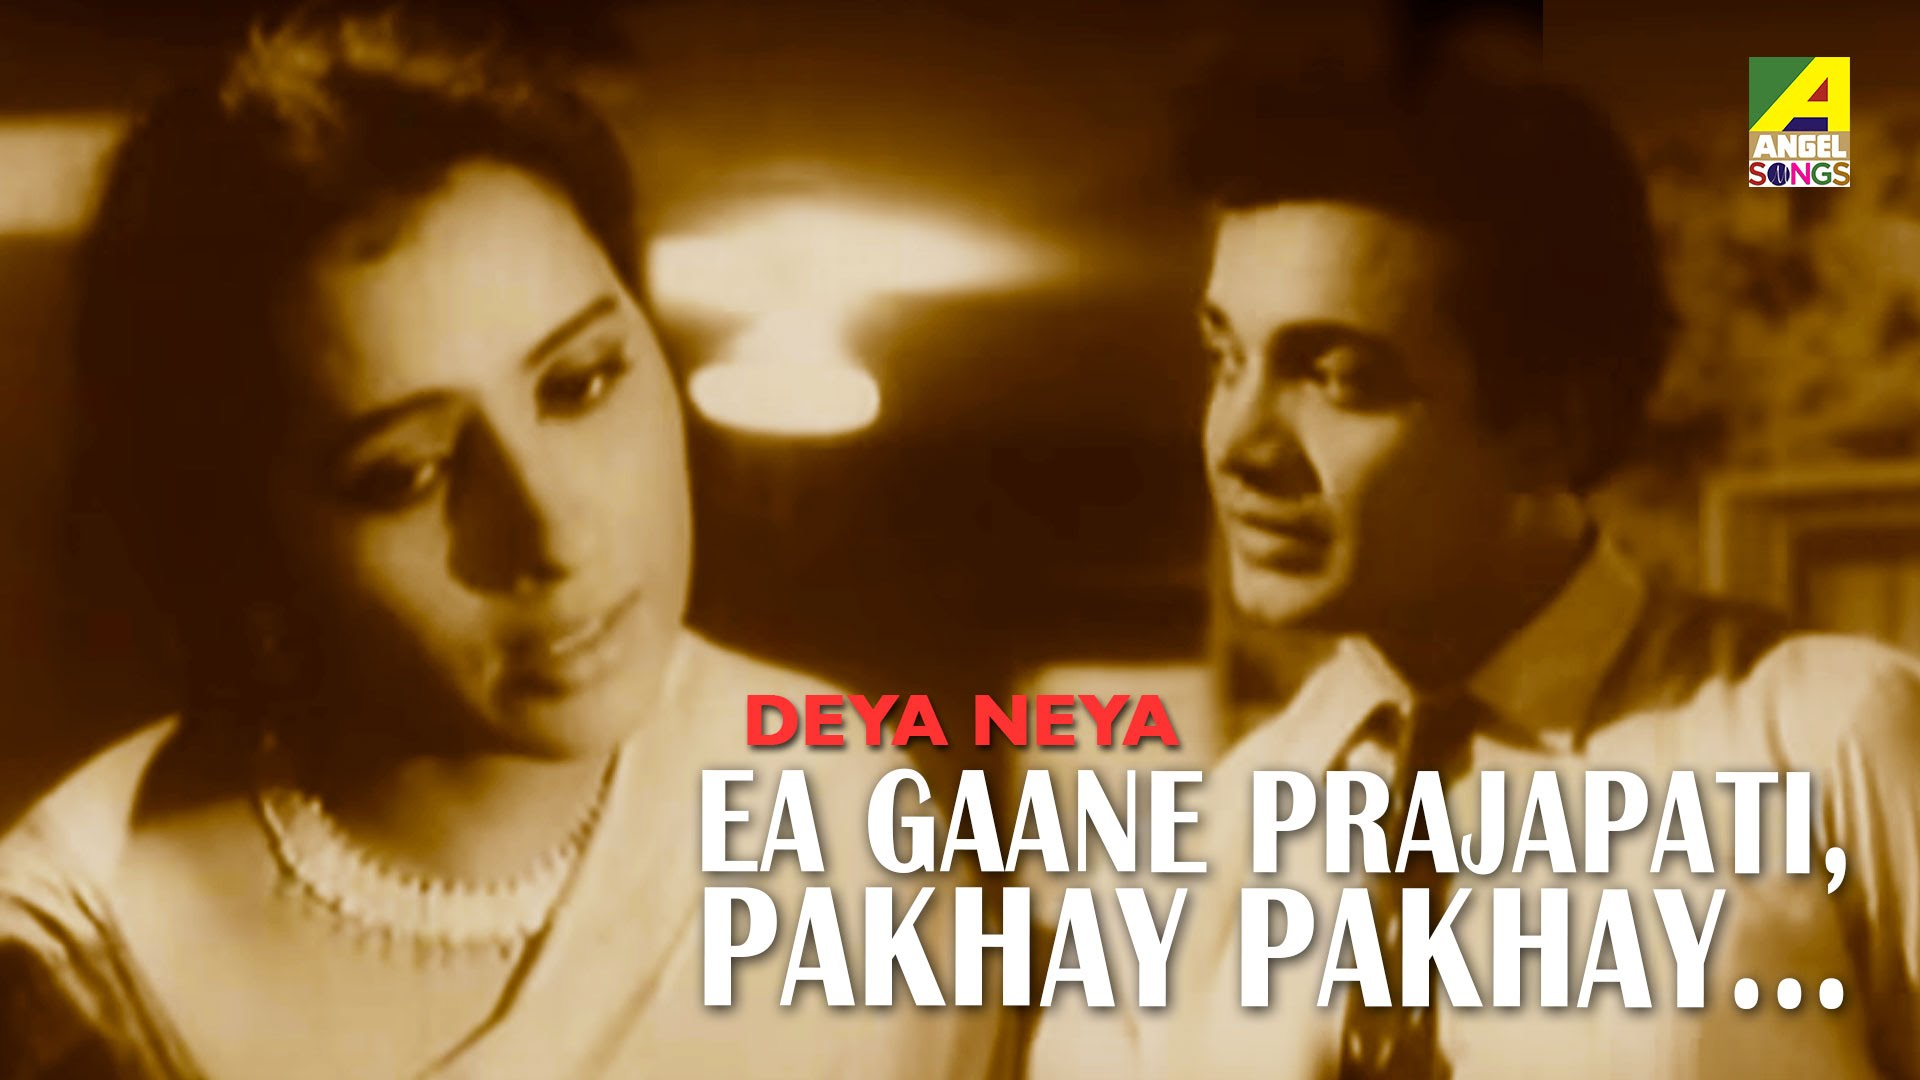 E-Gaane-Prajapati-Deya-Neya-Bengali-Movie-Song-Sandhya